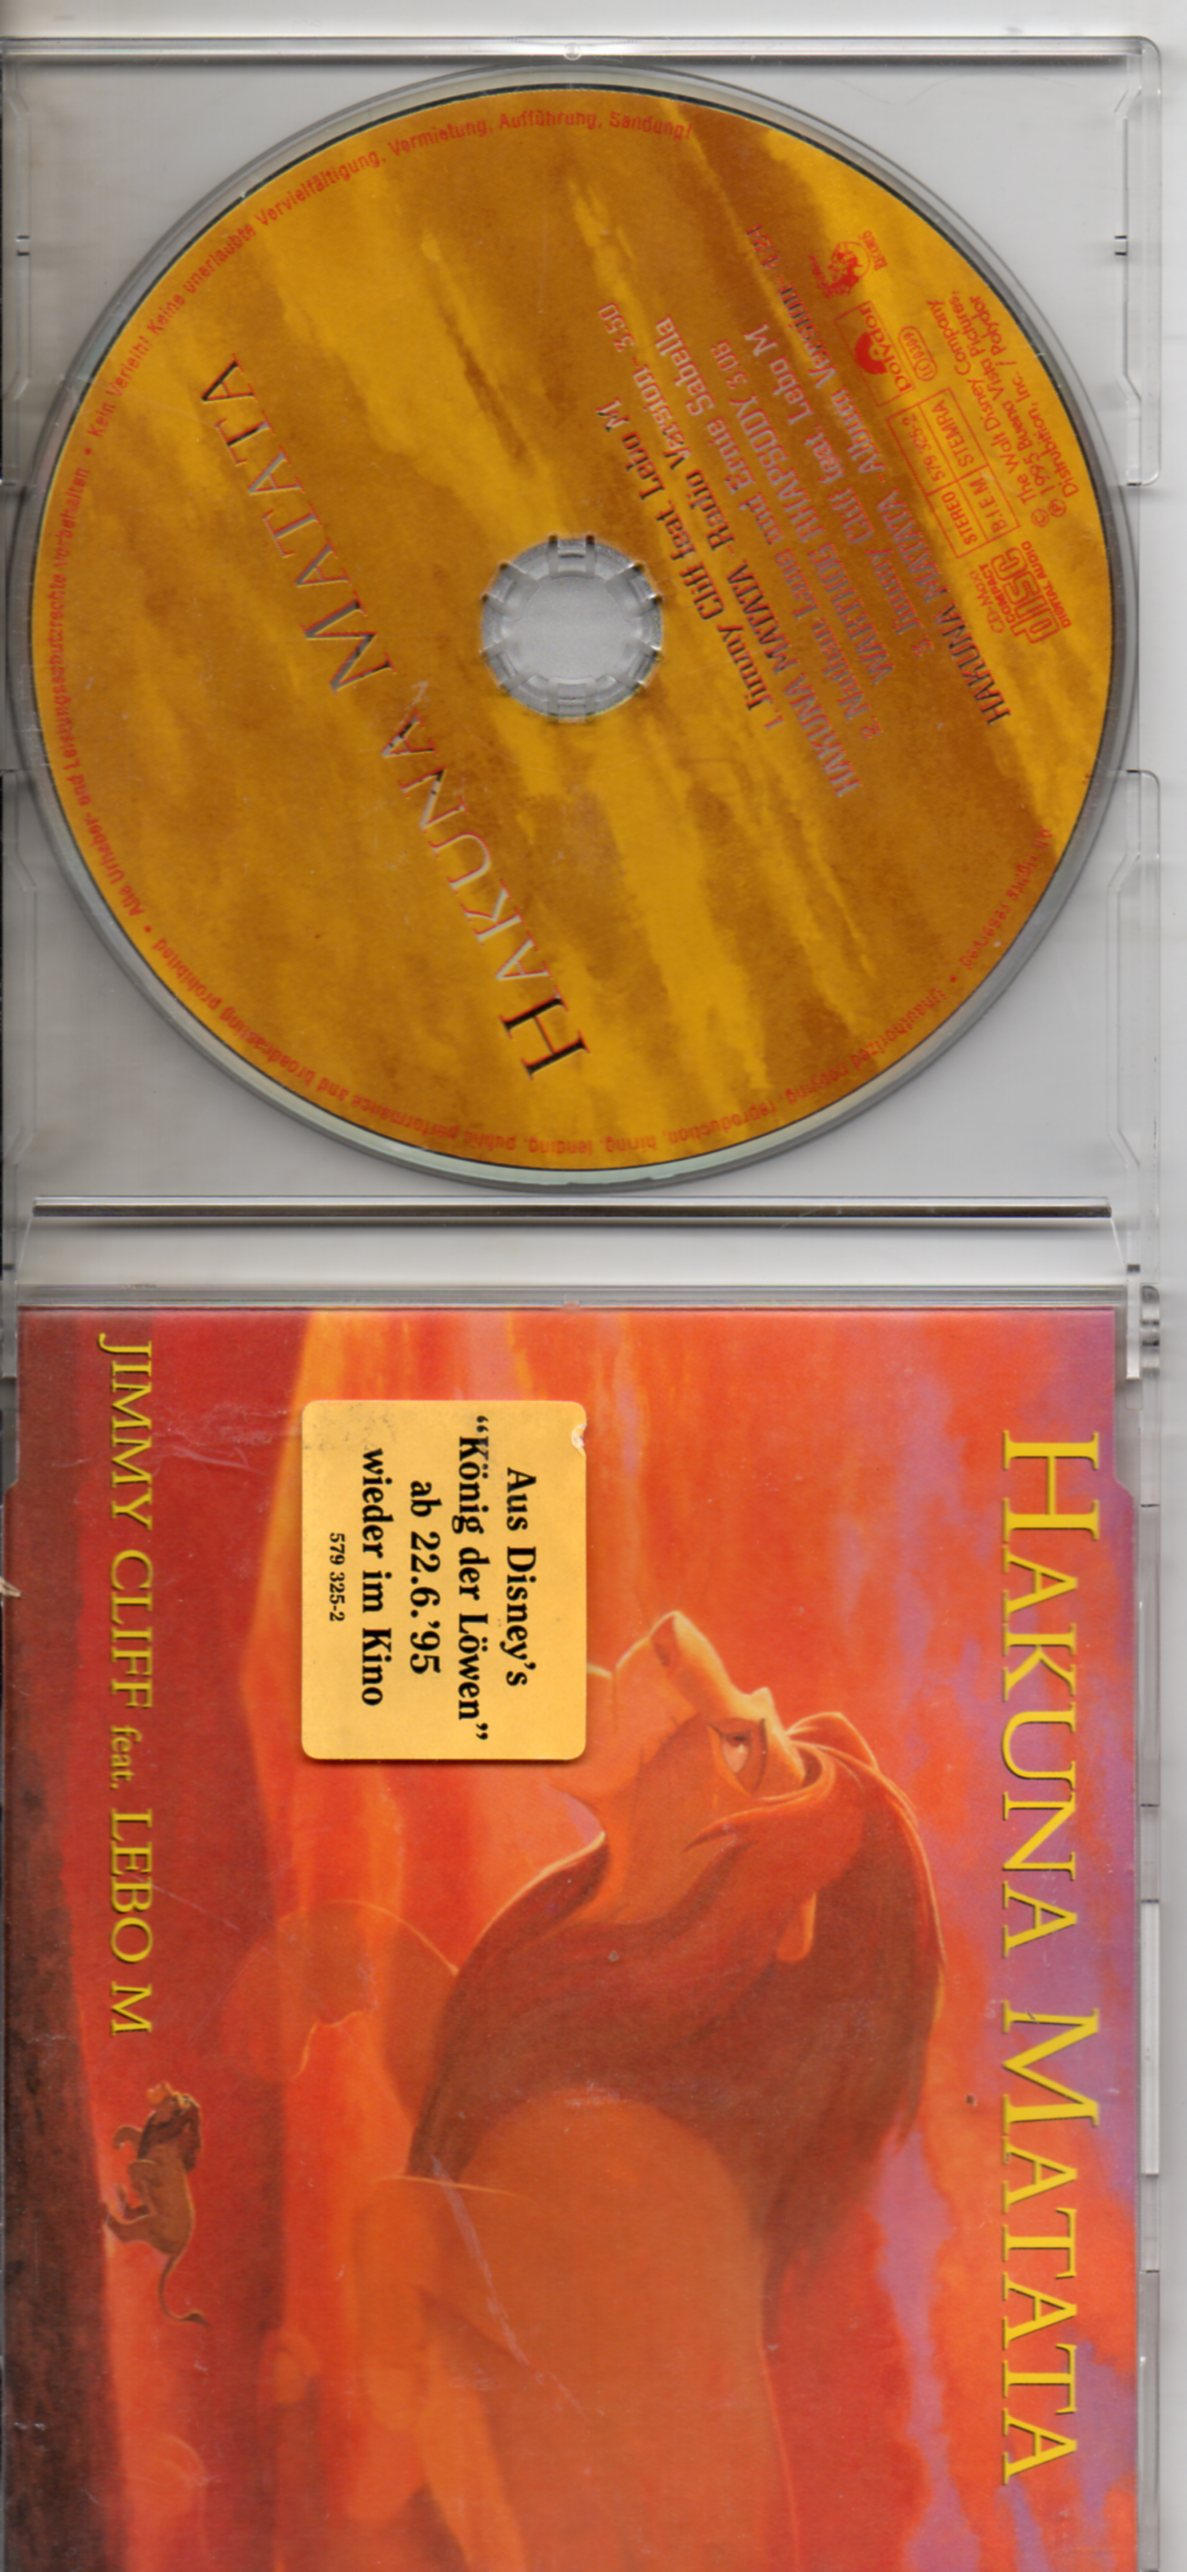 JIMMY CLIFF - Hakuma Matana 3 tracks jewel case - CD Maxi